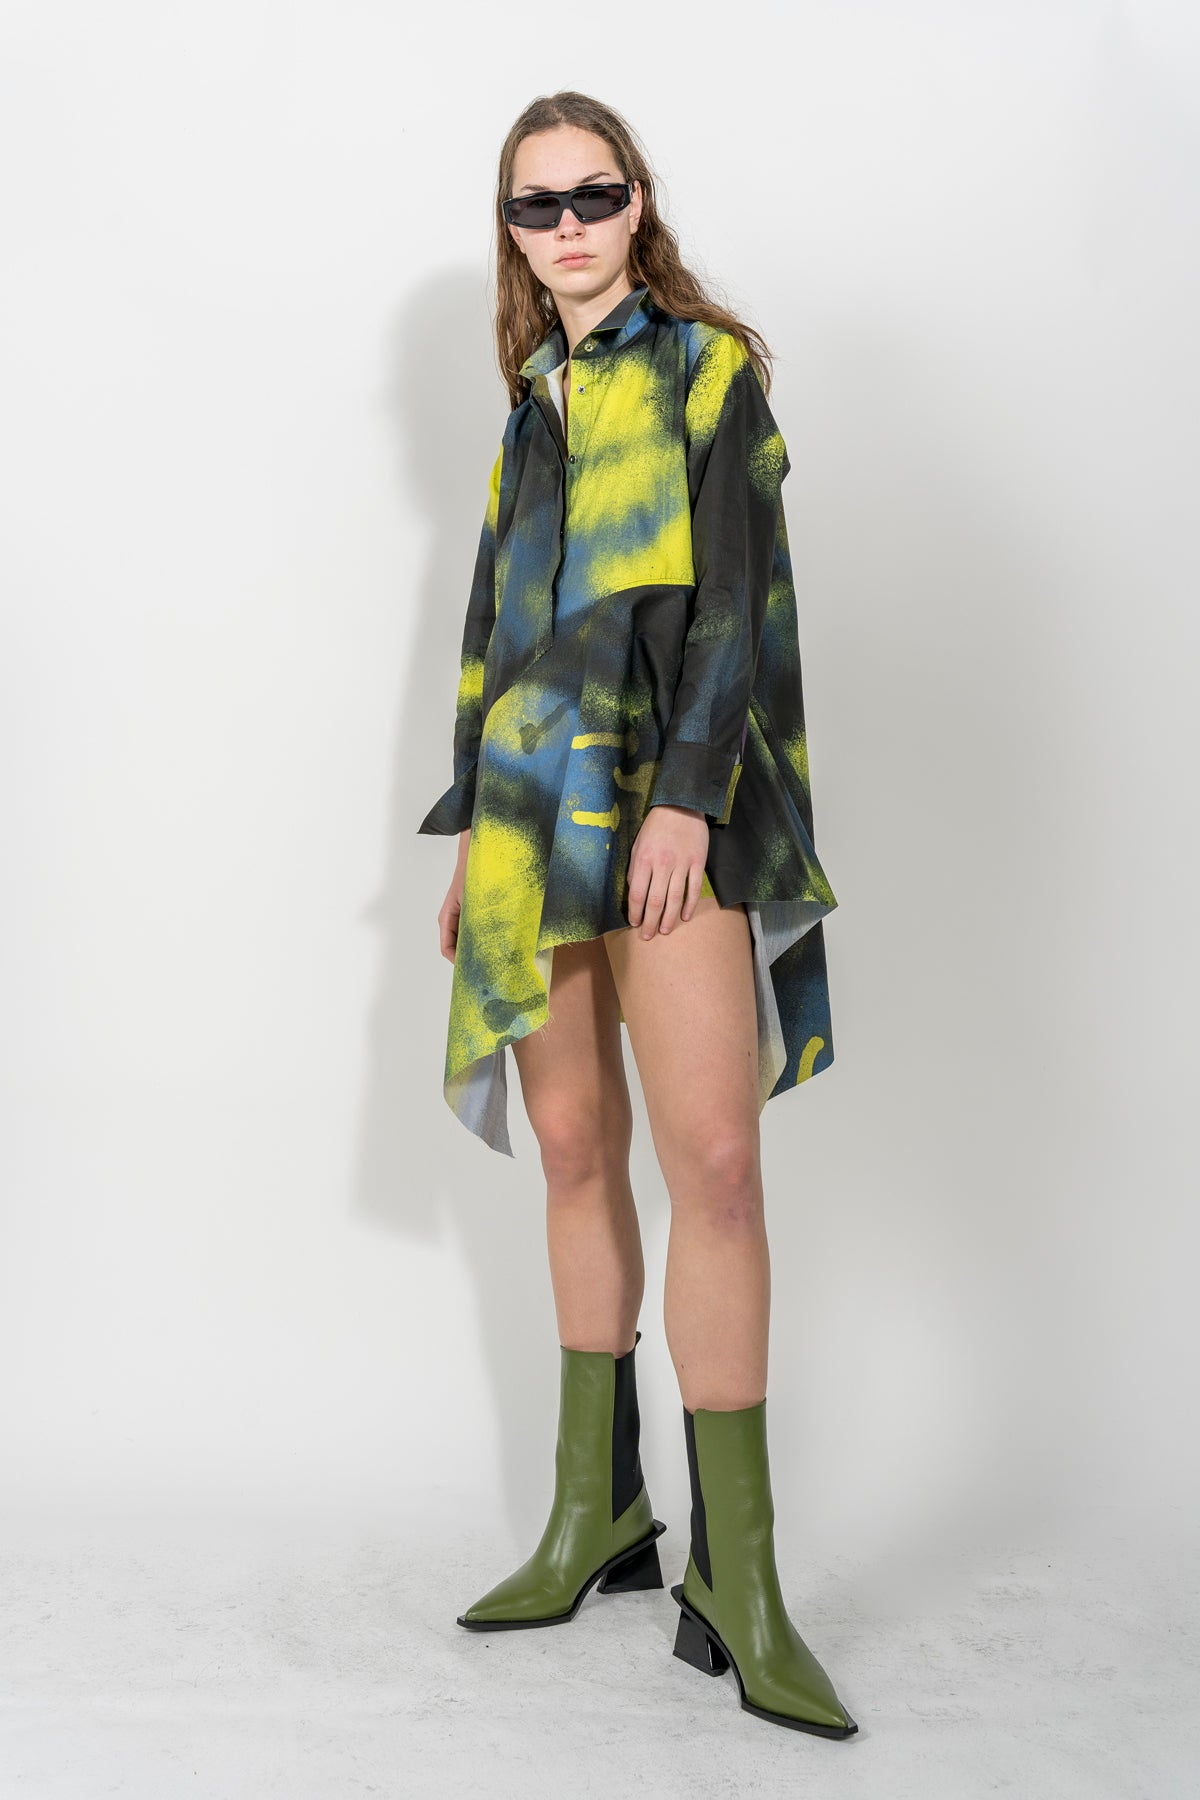 ASYMMETRIC SHIRT DRESS IN YELLOW & BLACK PRINT